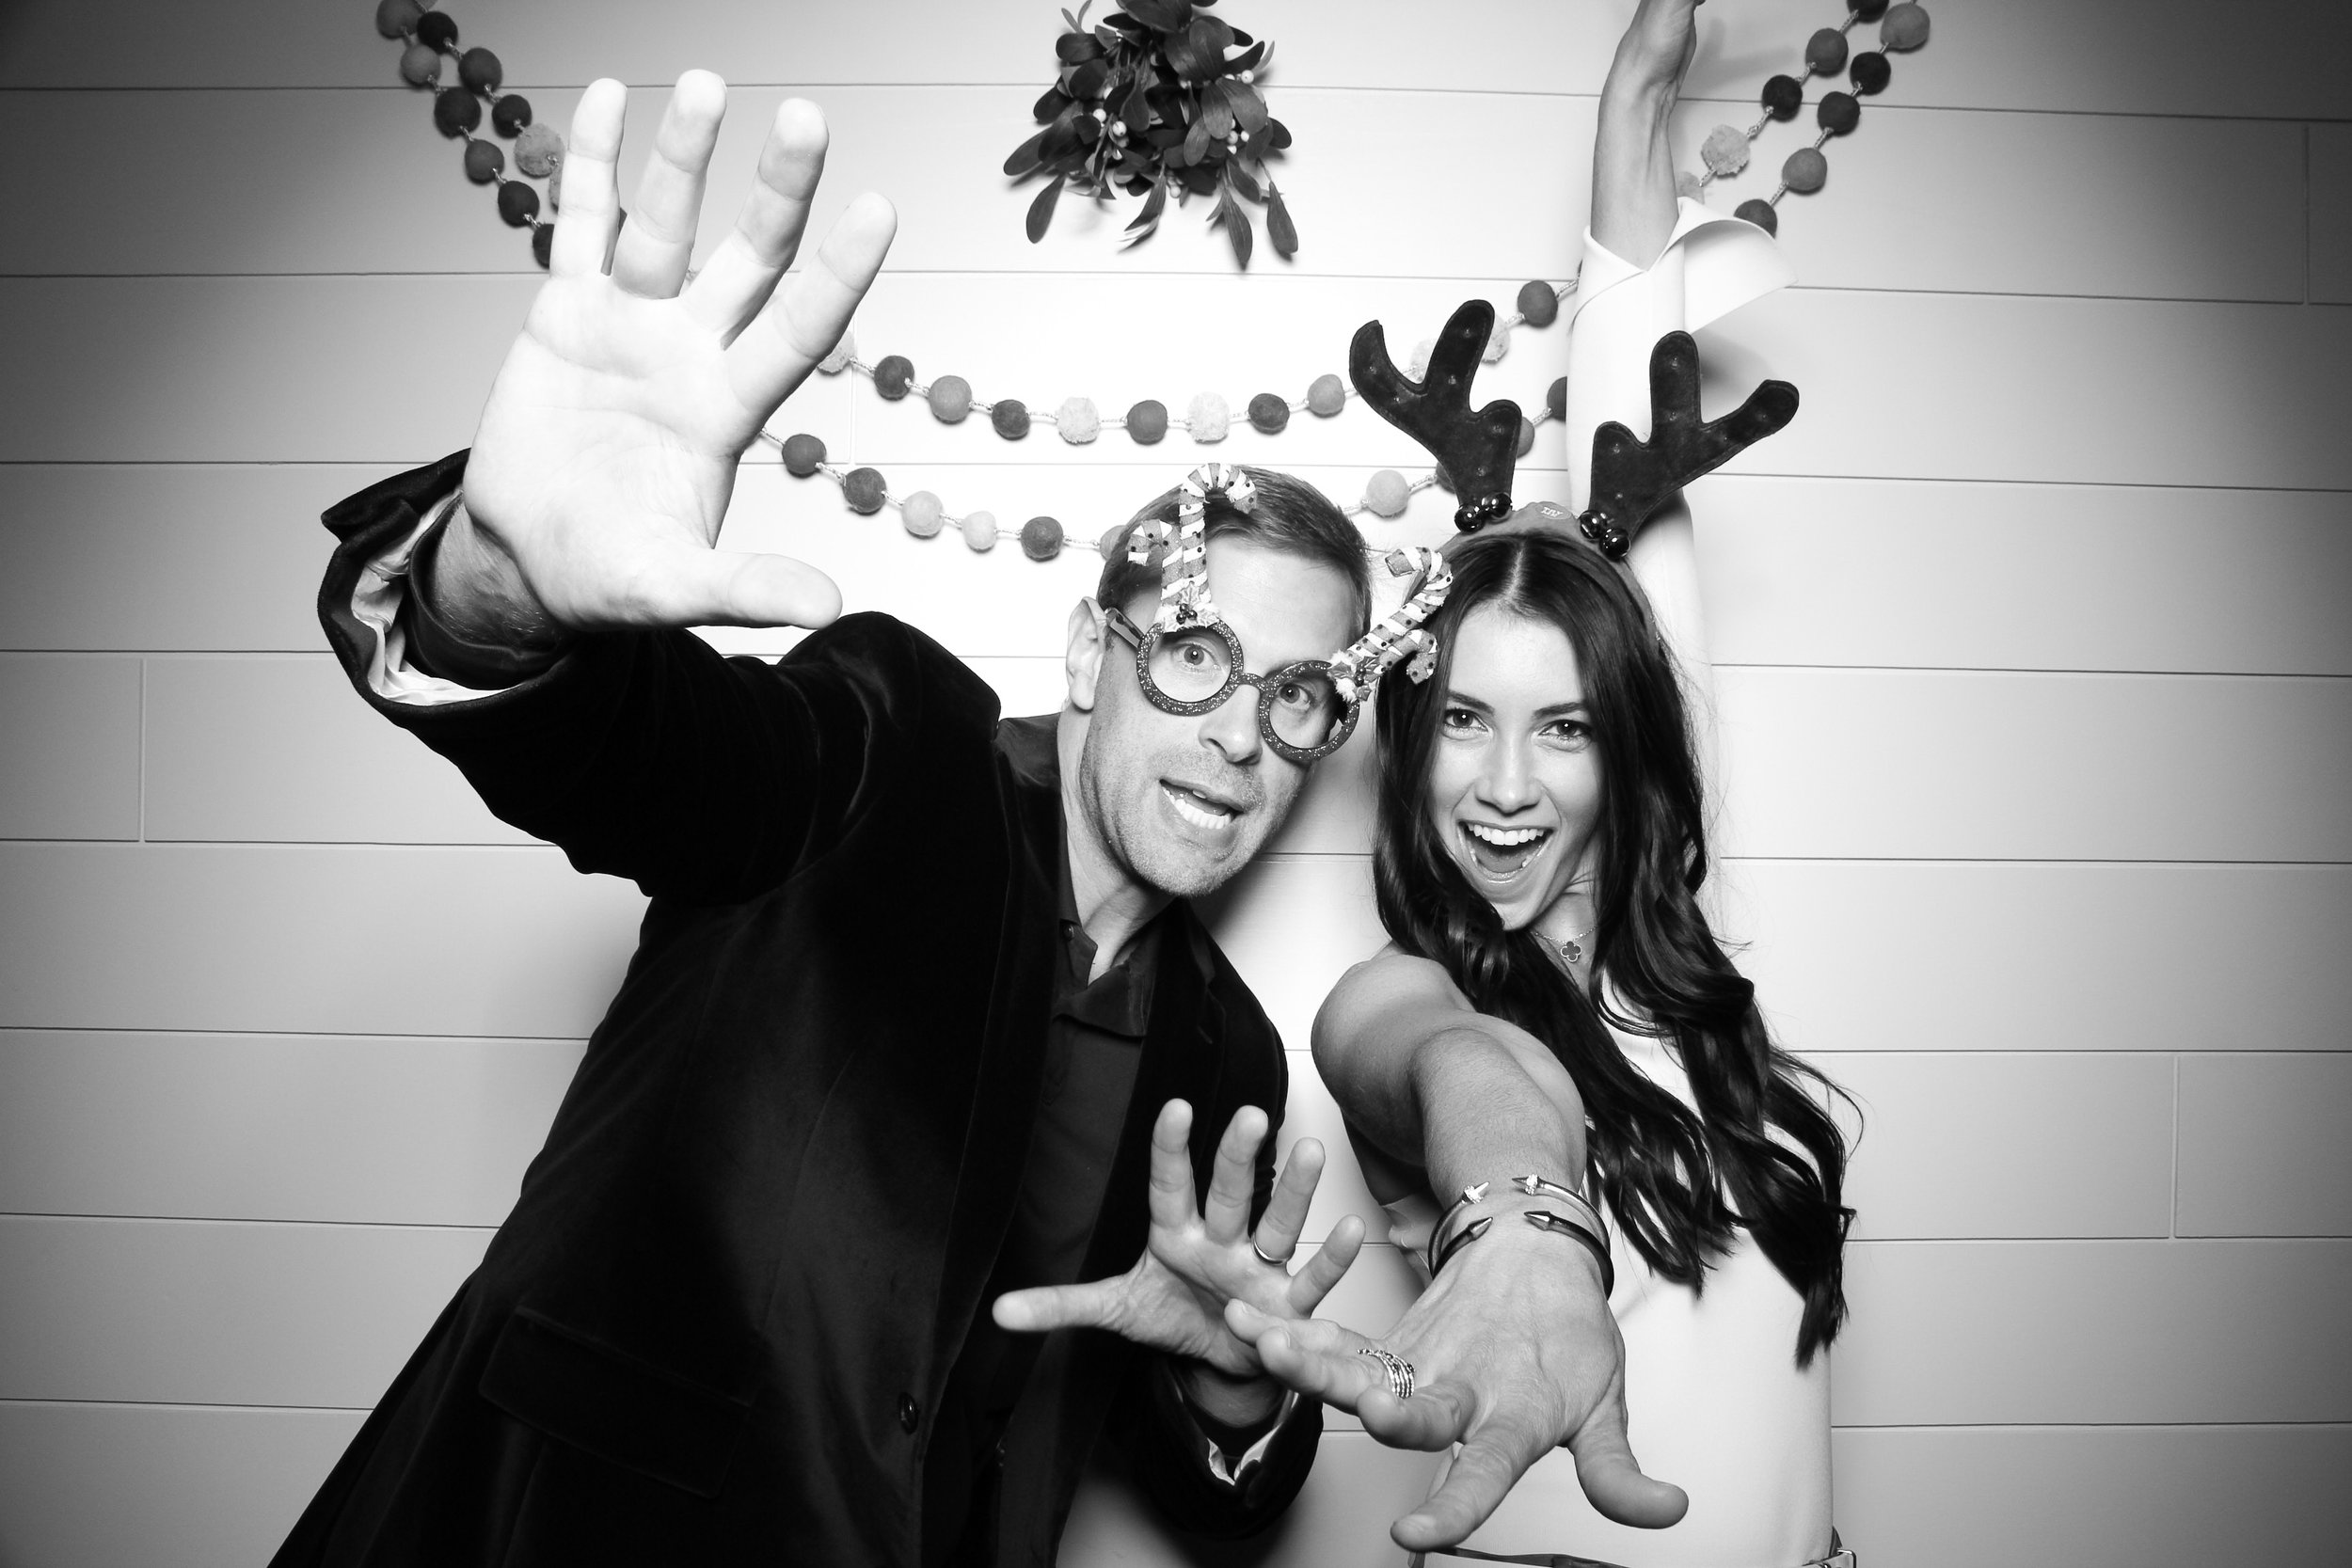 Chicago_Vintage_Photobooth_Christmas_Holiday_Party_08.jpg